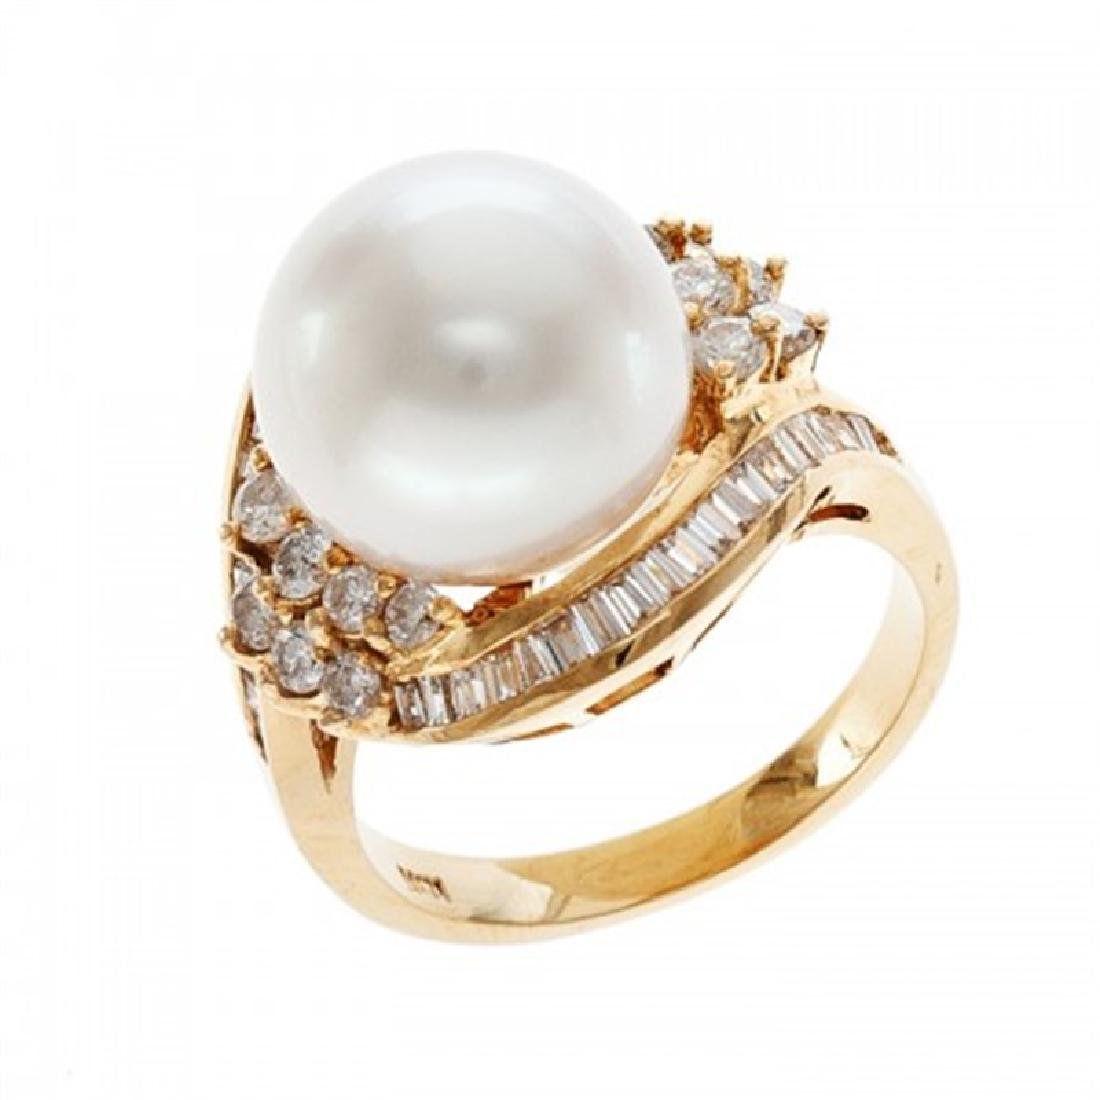 12.0-12.5mm South Sea Pearl Ring with Diamonds